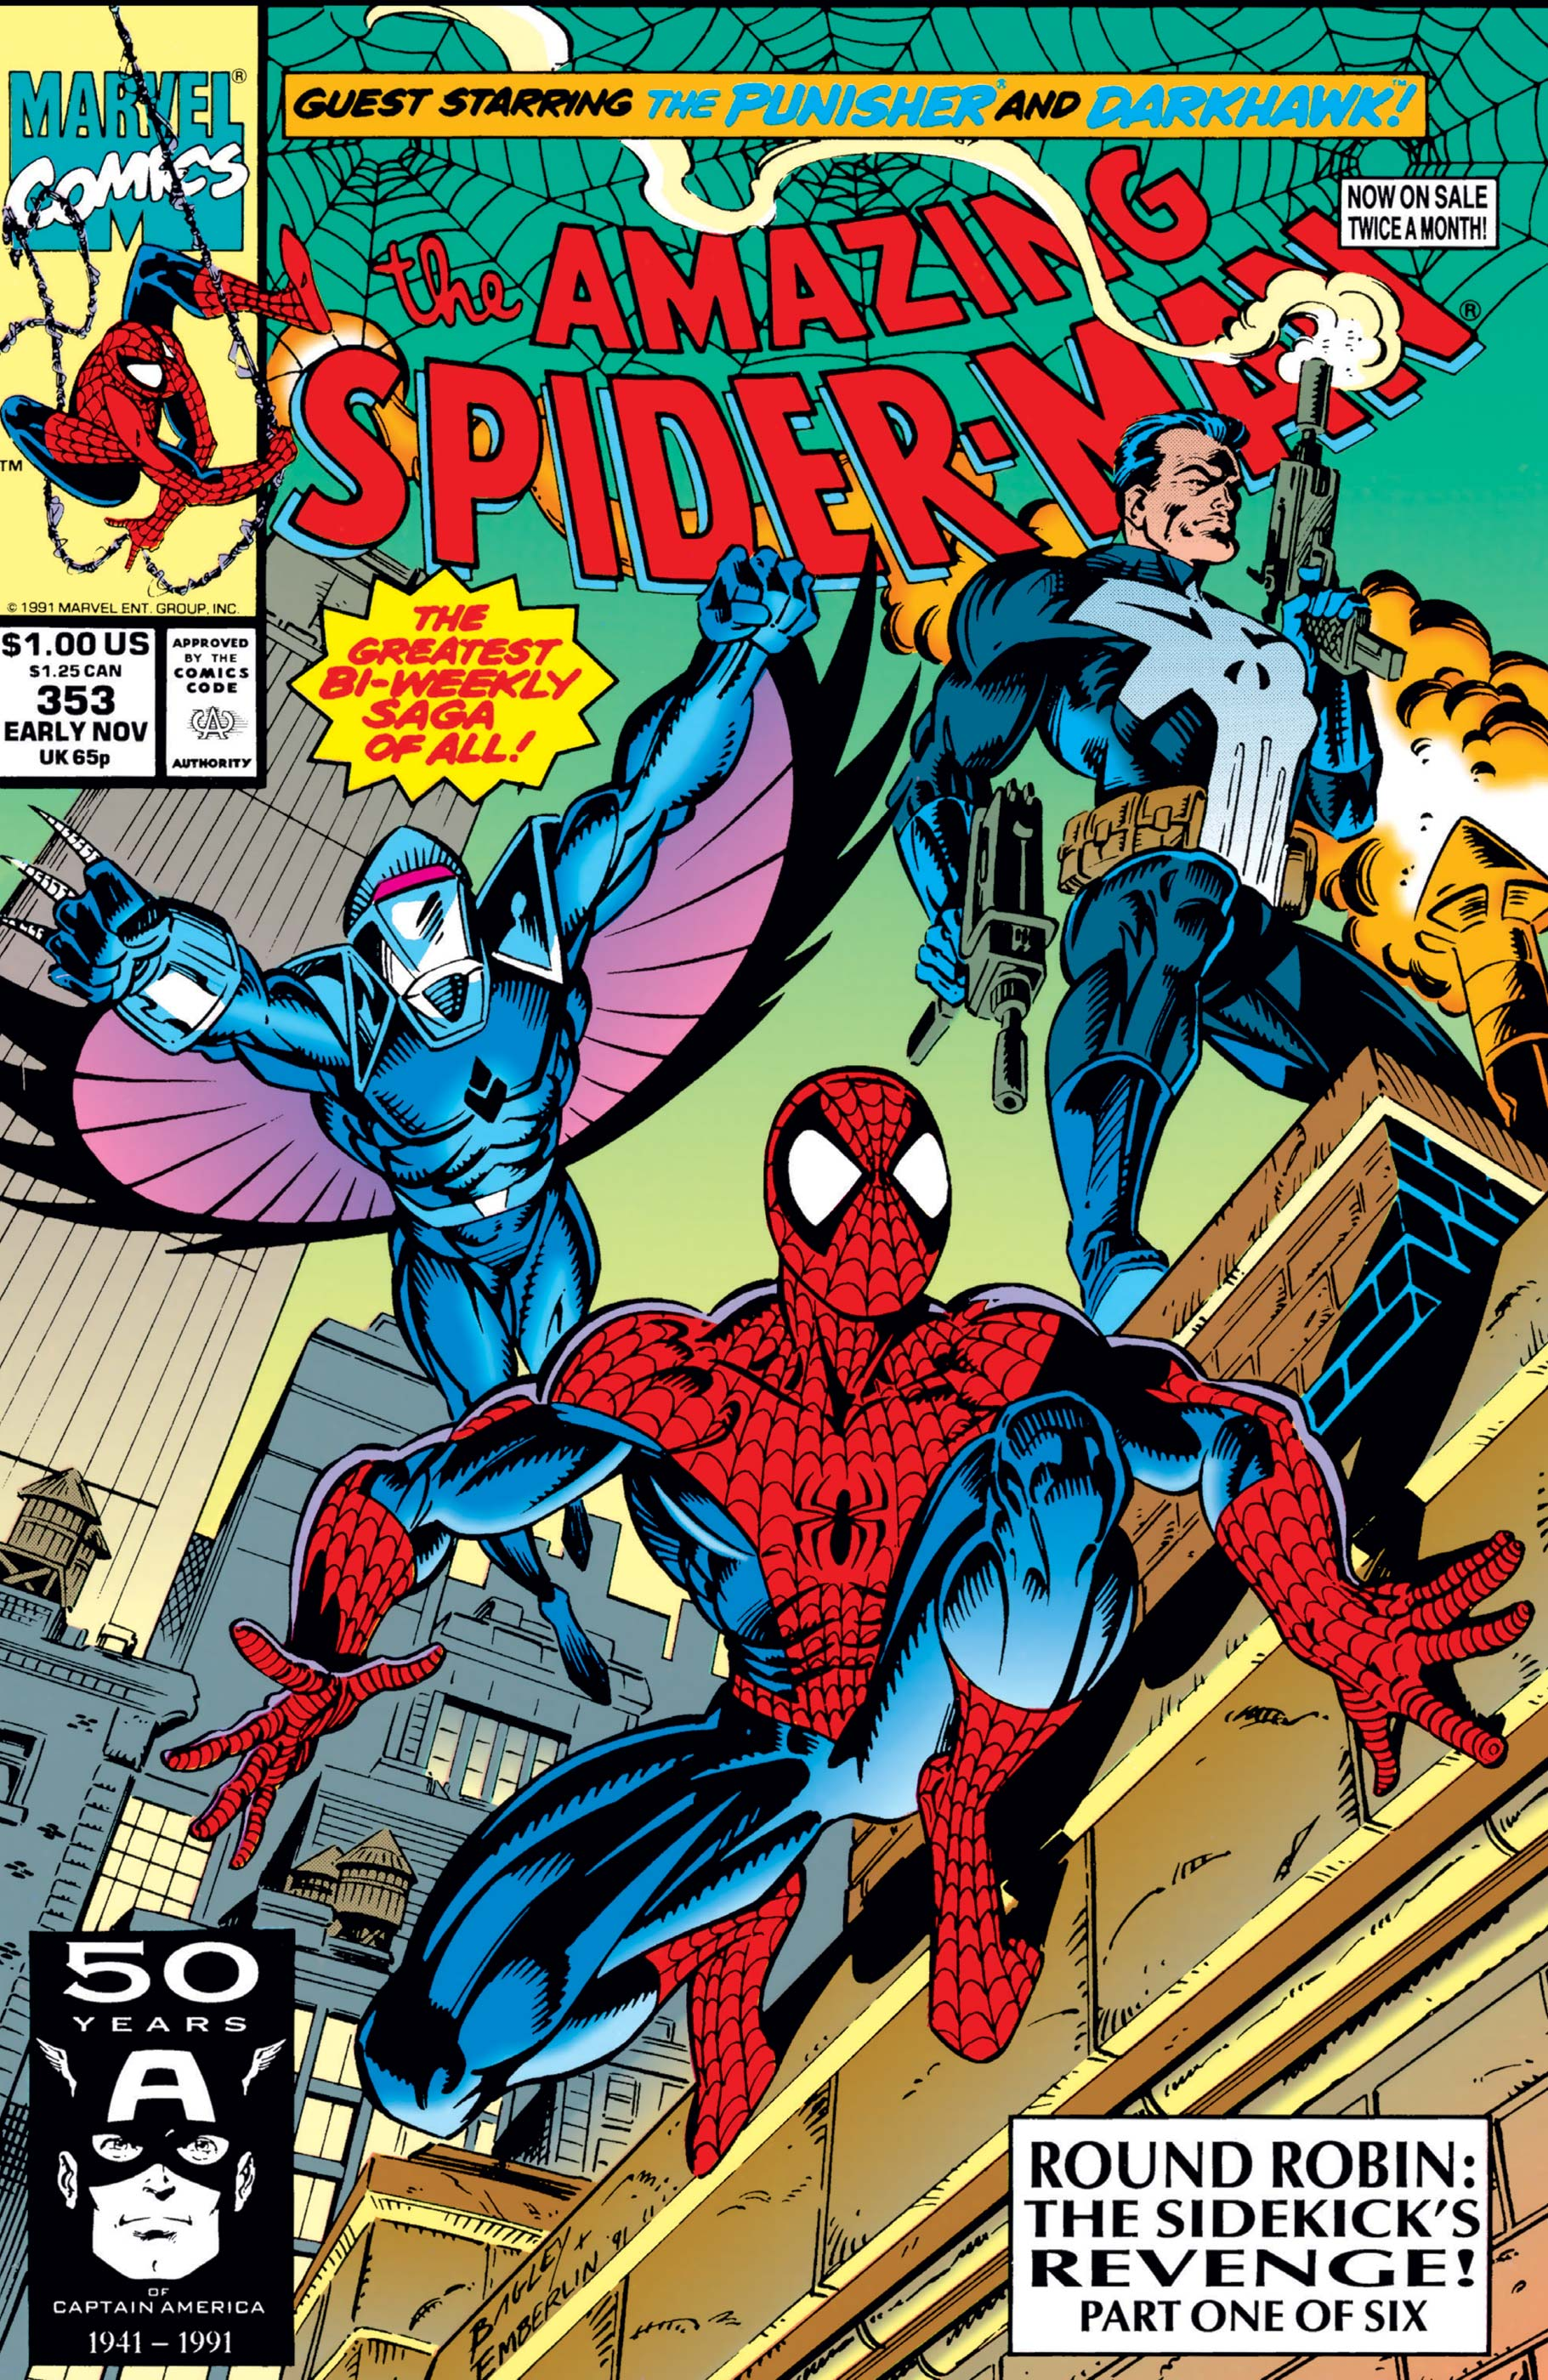 The Amazing Spider-Man (1963) #353